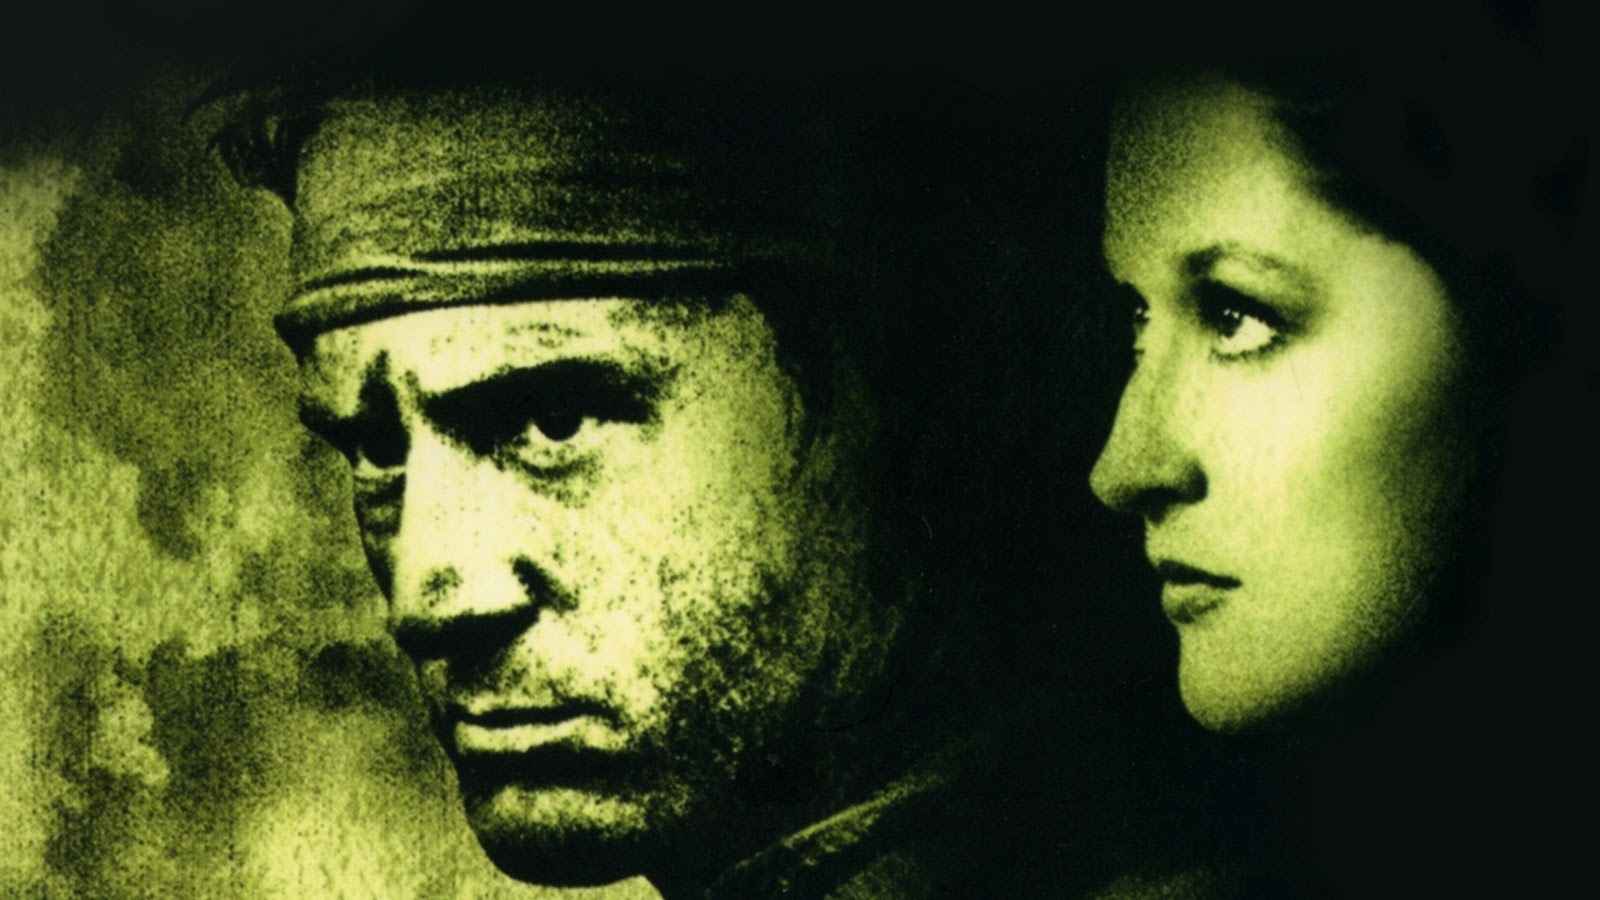 a critical review of the movie the deer hunter directed by michael cimino I saw michael cimino's the deer hunter on a  the deer hunter was a great movie,  out excerpts of negative reviews of the deer hunter to oscar-goers and held.